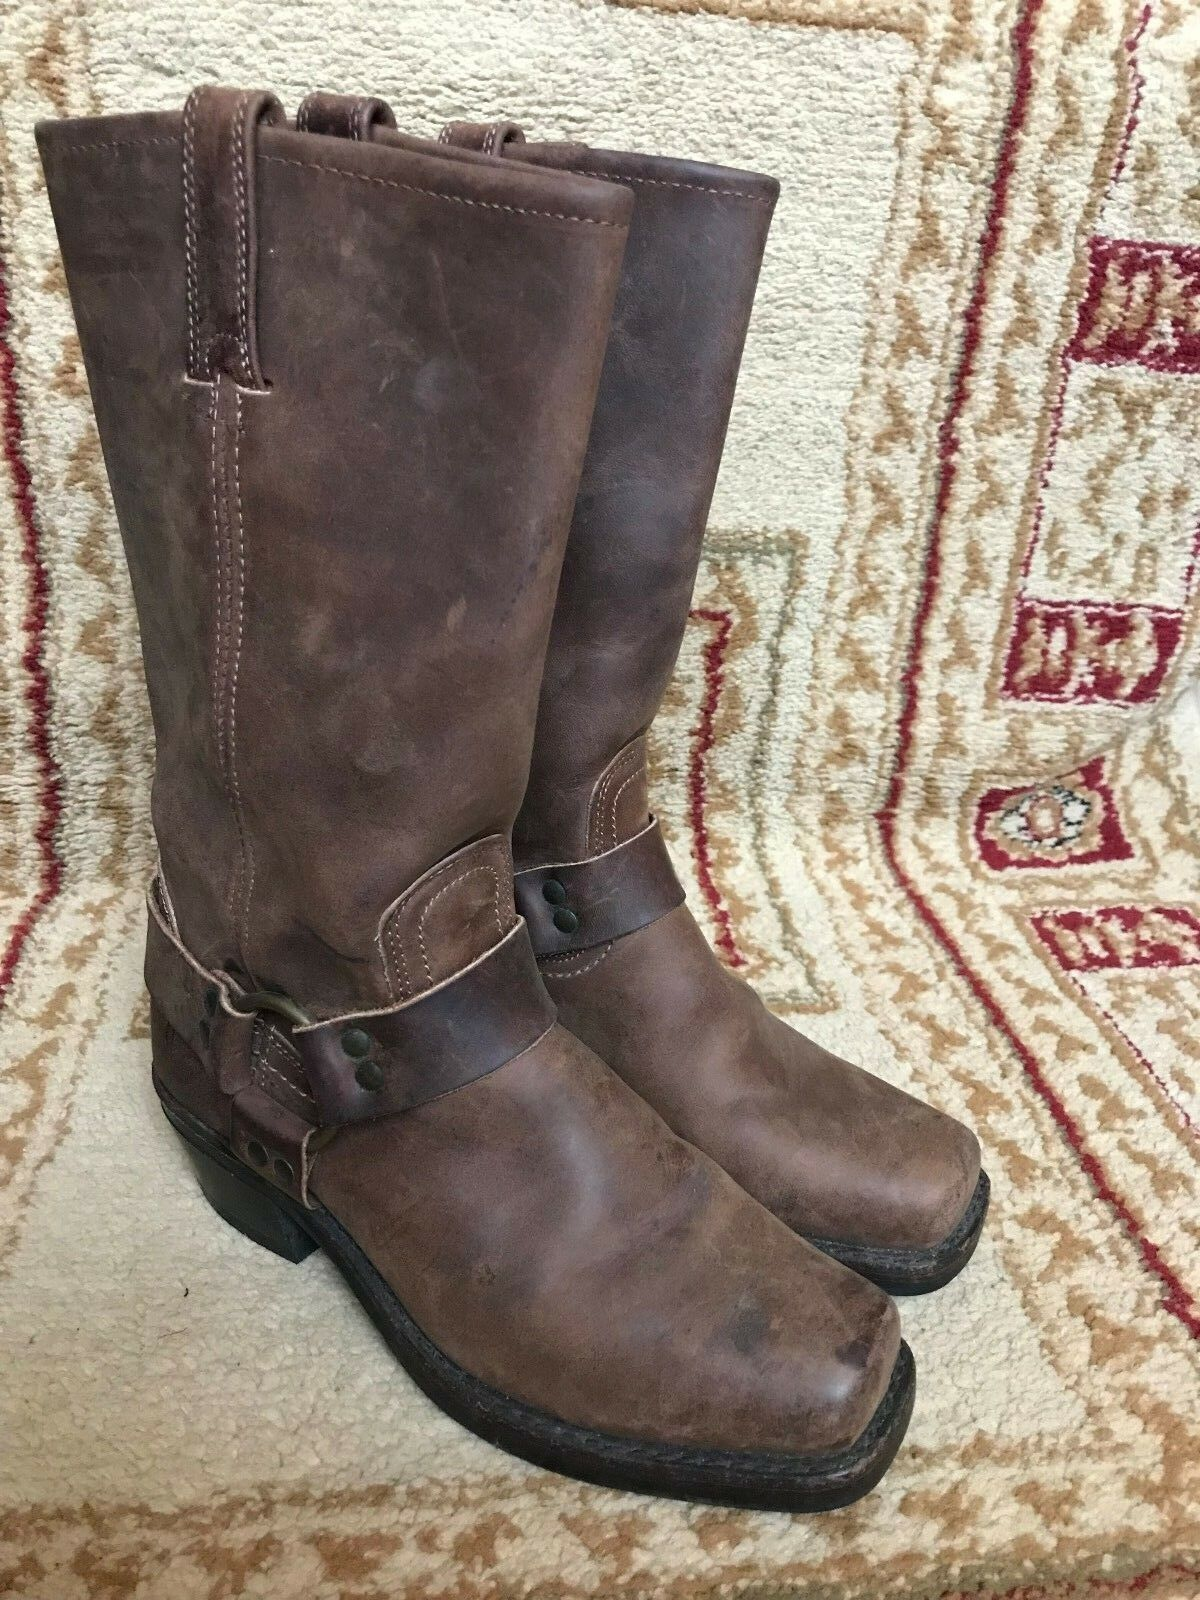 Frye 77300 Brown leather Harness Engineer Rivets Motorcycle Women's Boots 7 M